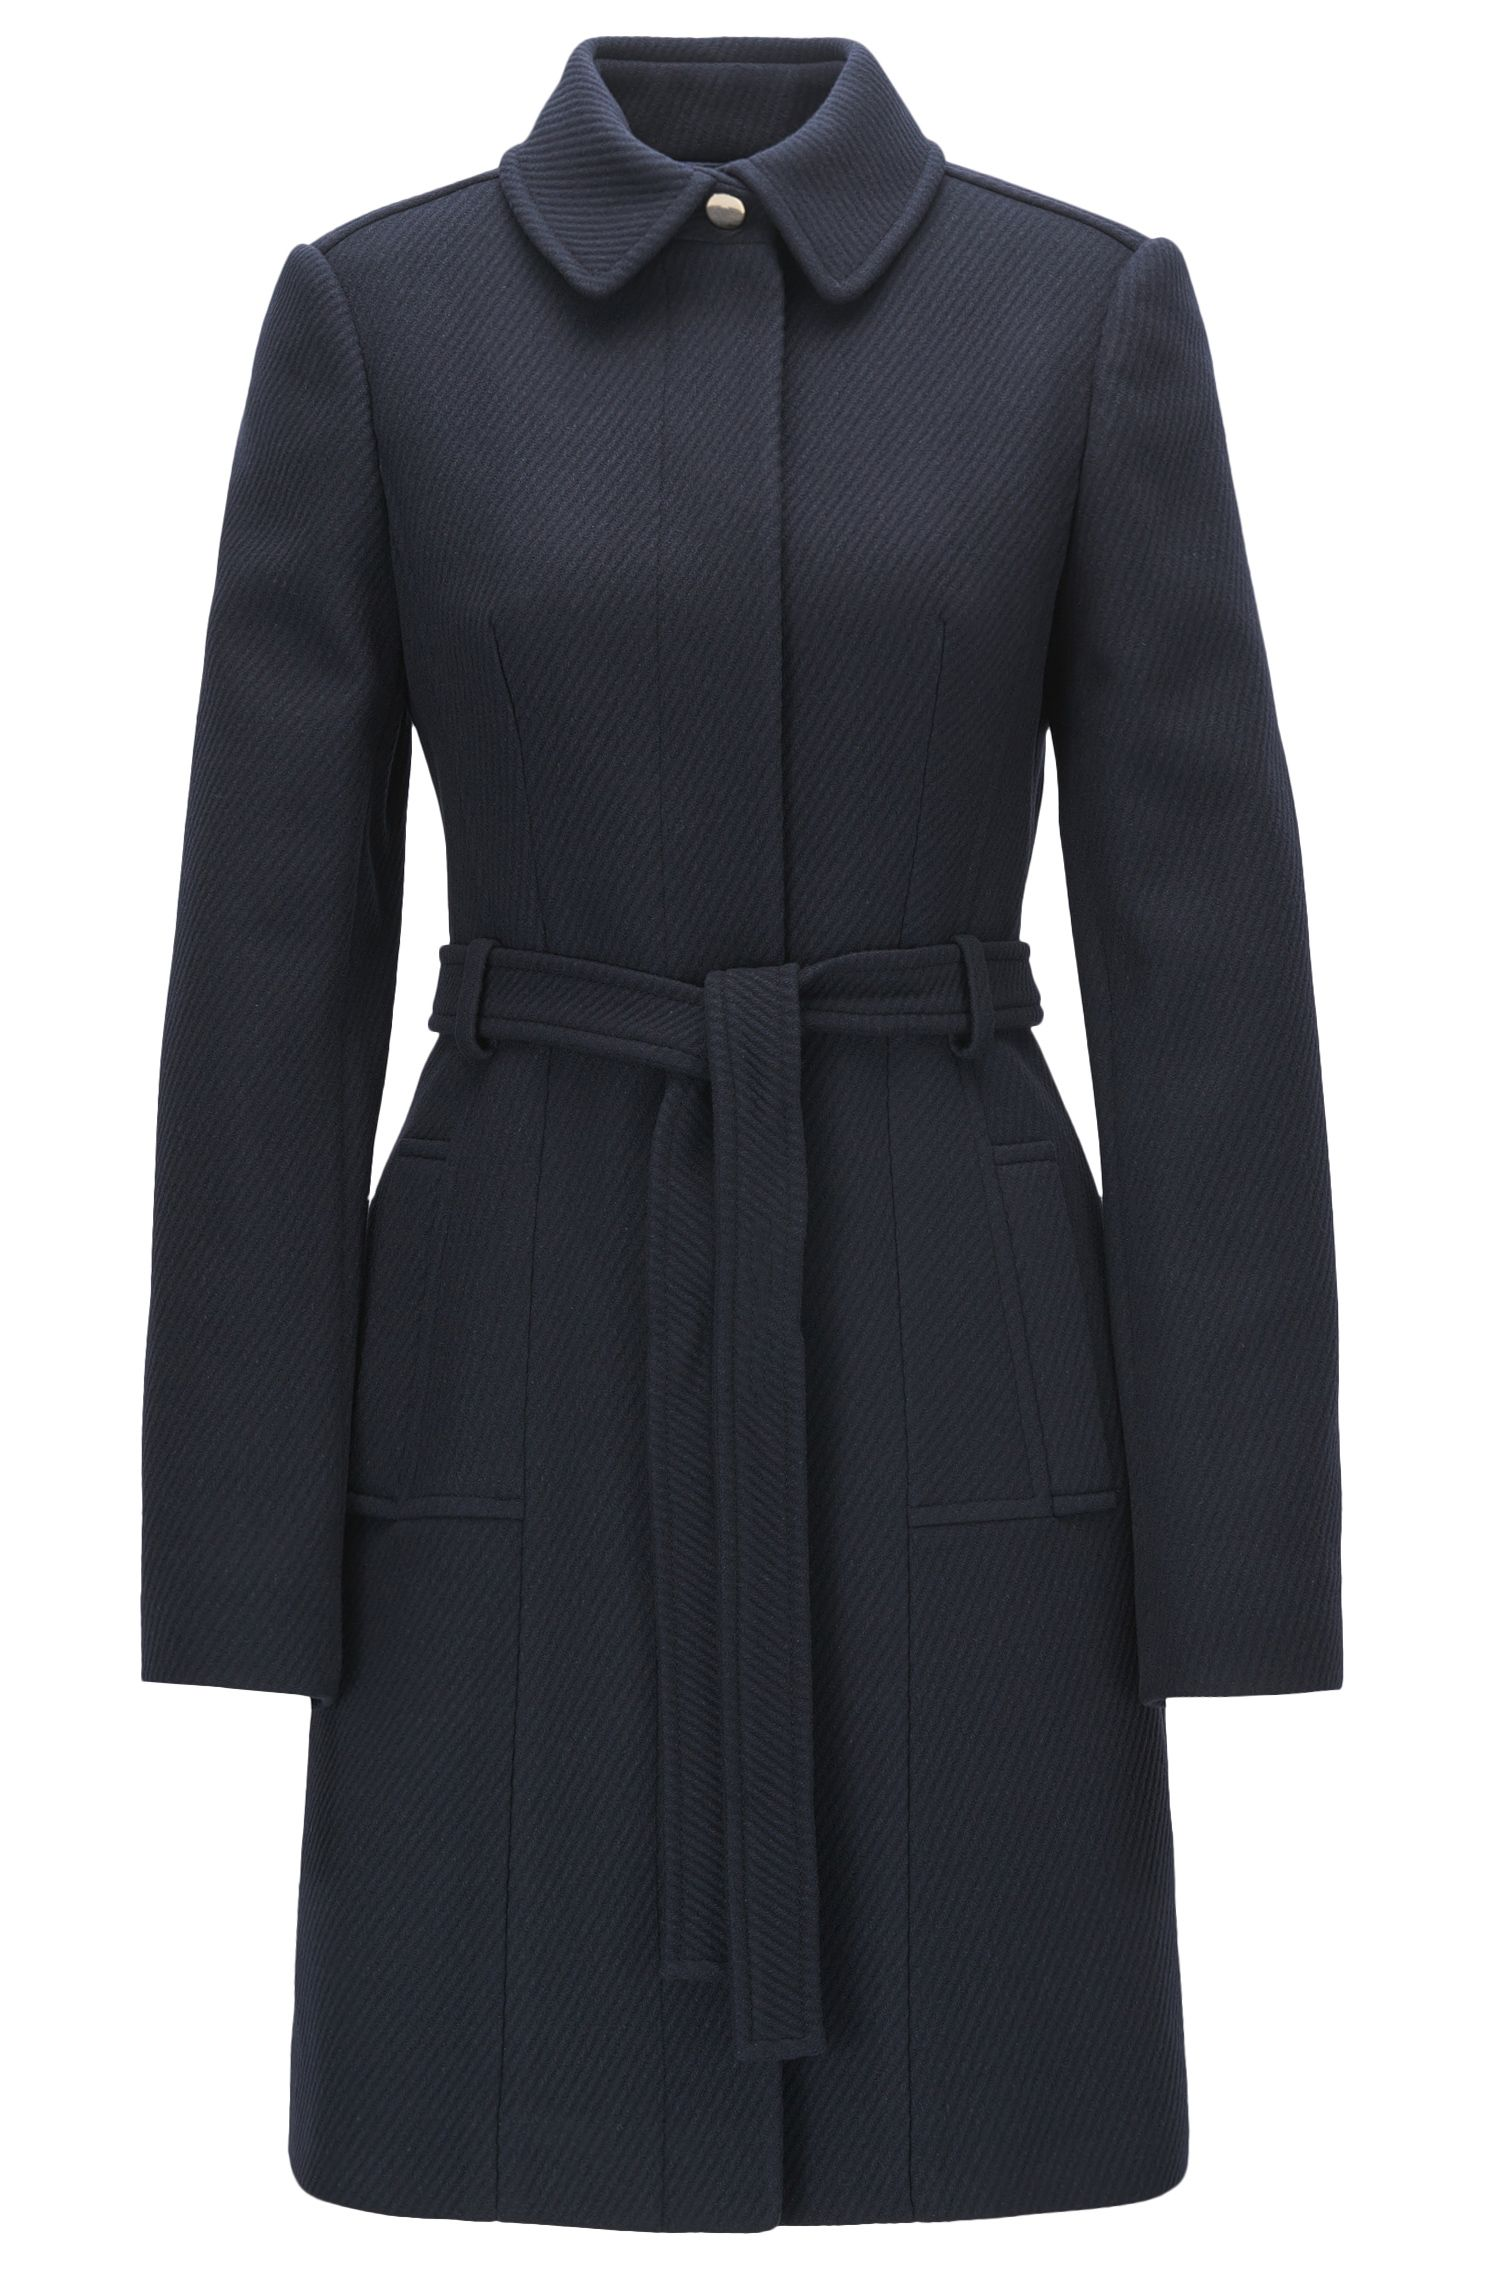 Regular-fit wool-blend coat with tie belt